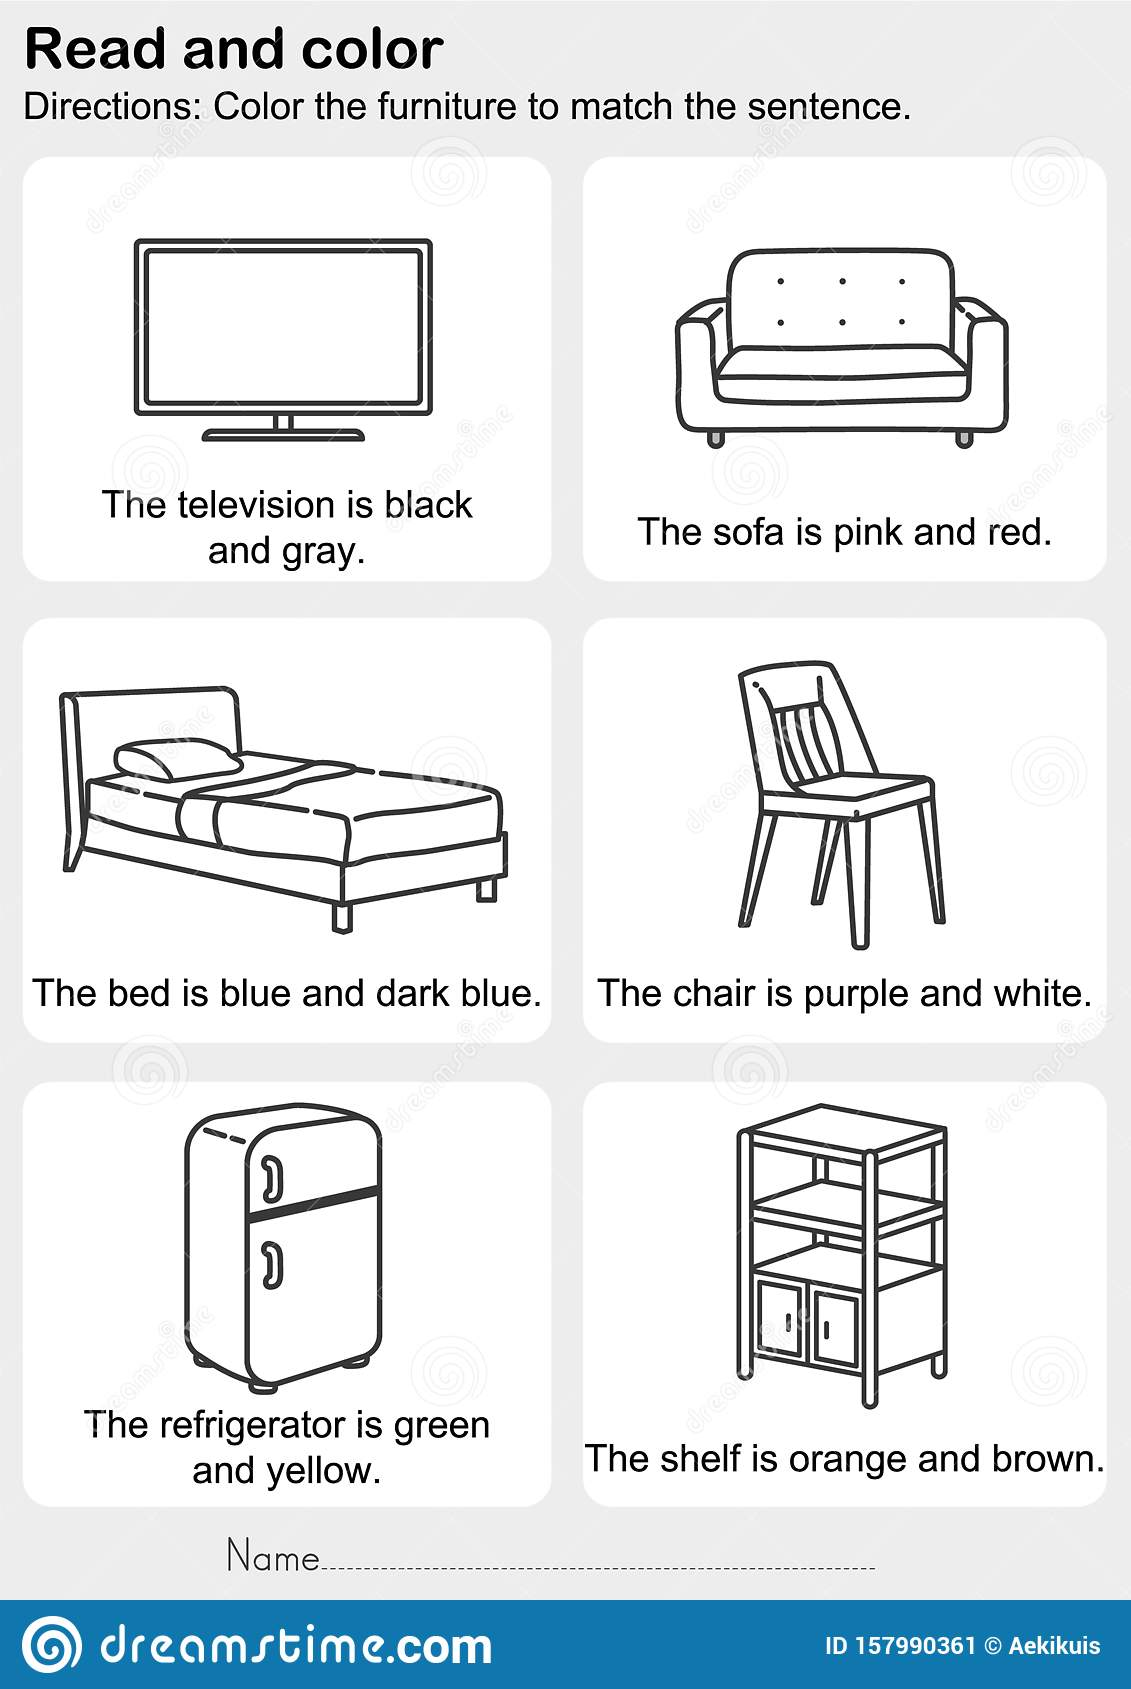 Read And Color Color The Furniture To Match The Sentence